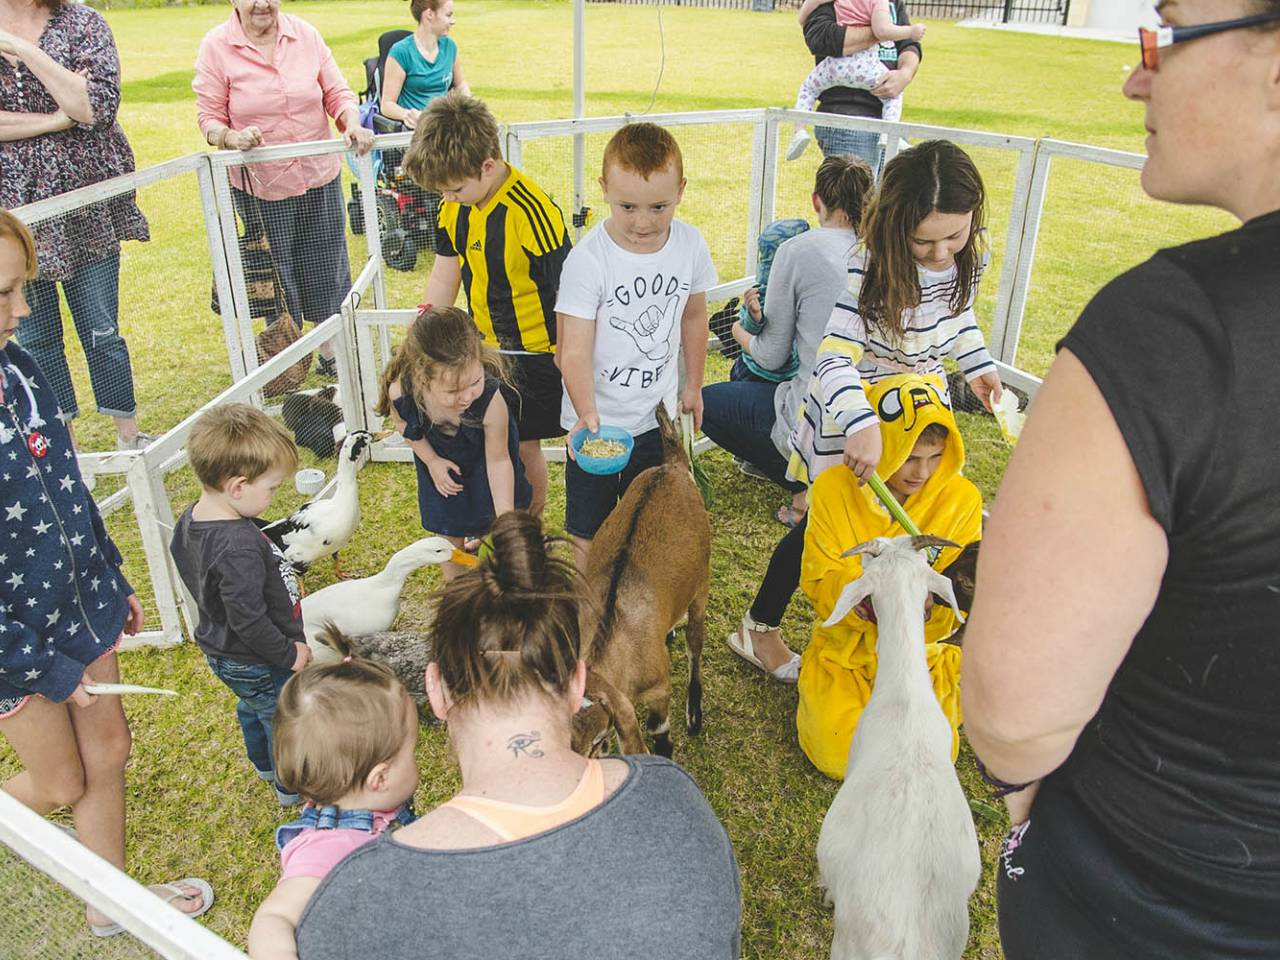 Children Petting Animals At A Small Animal Farm On The Grass Area At The Outside Event Venue.